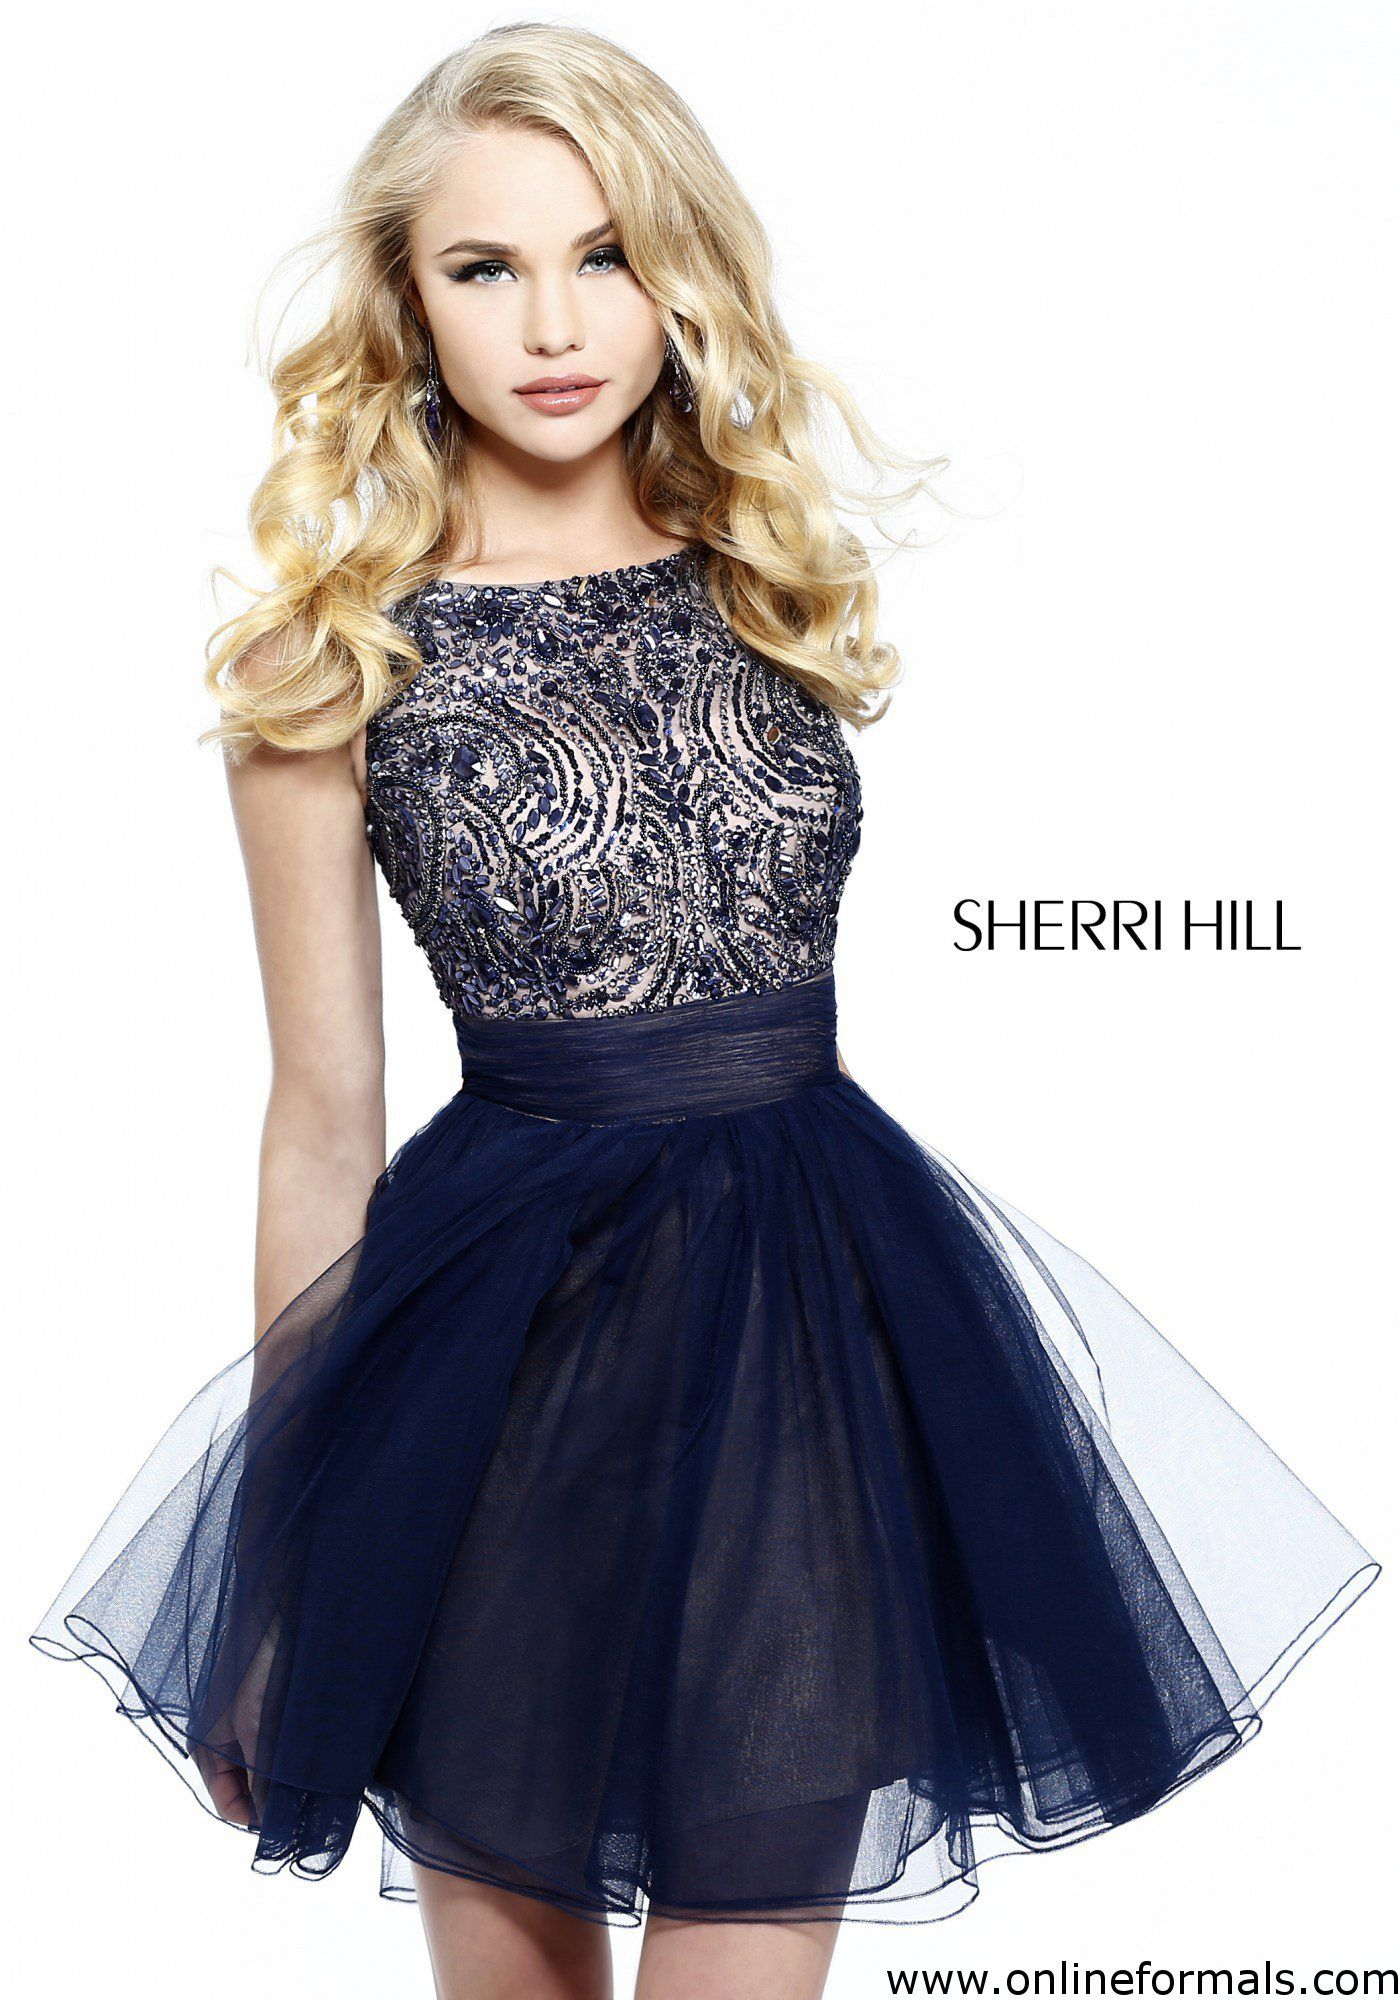 78 Best images about Sherri Hill Dresses on Pinterest - Blue ...